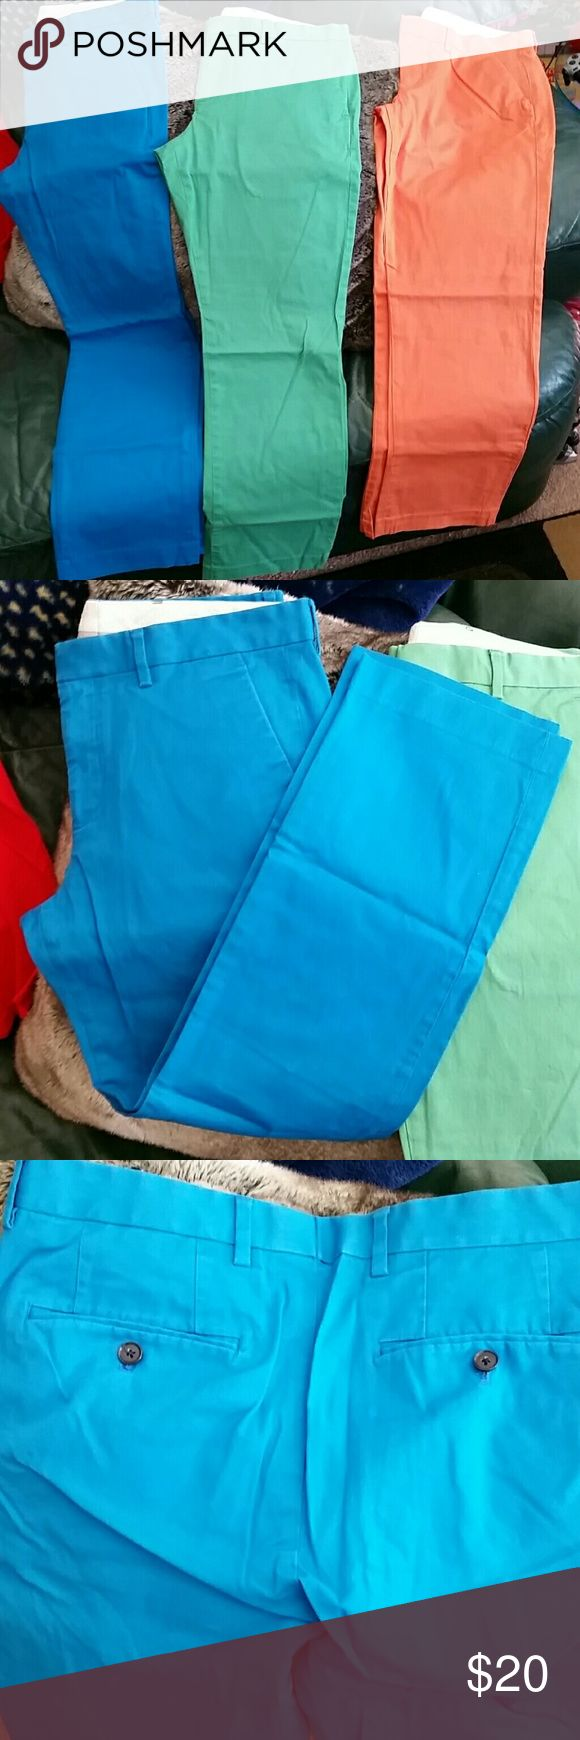 Express Photographer bright blue pants 32x30 Great condition size 32x30 Express Pants Chinos & Khakis